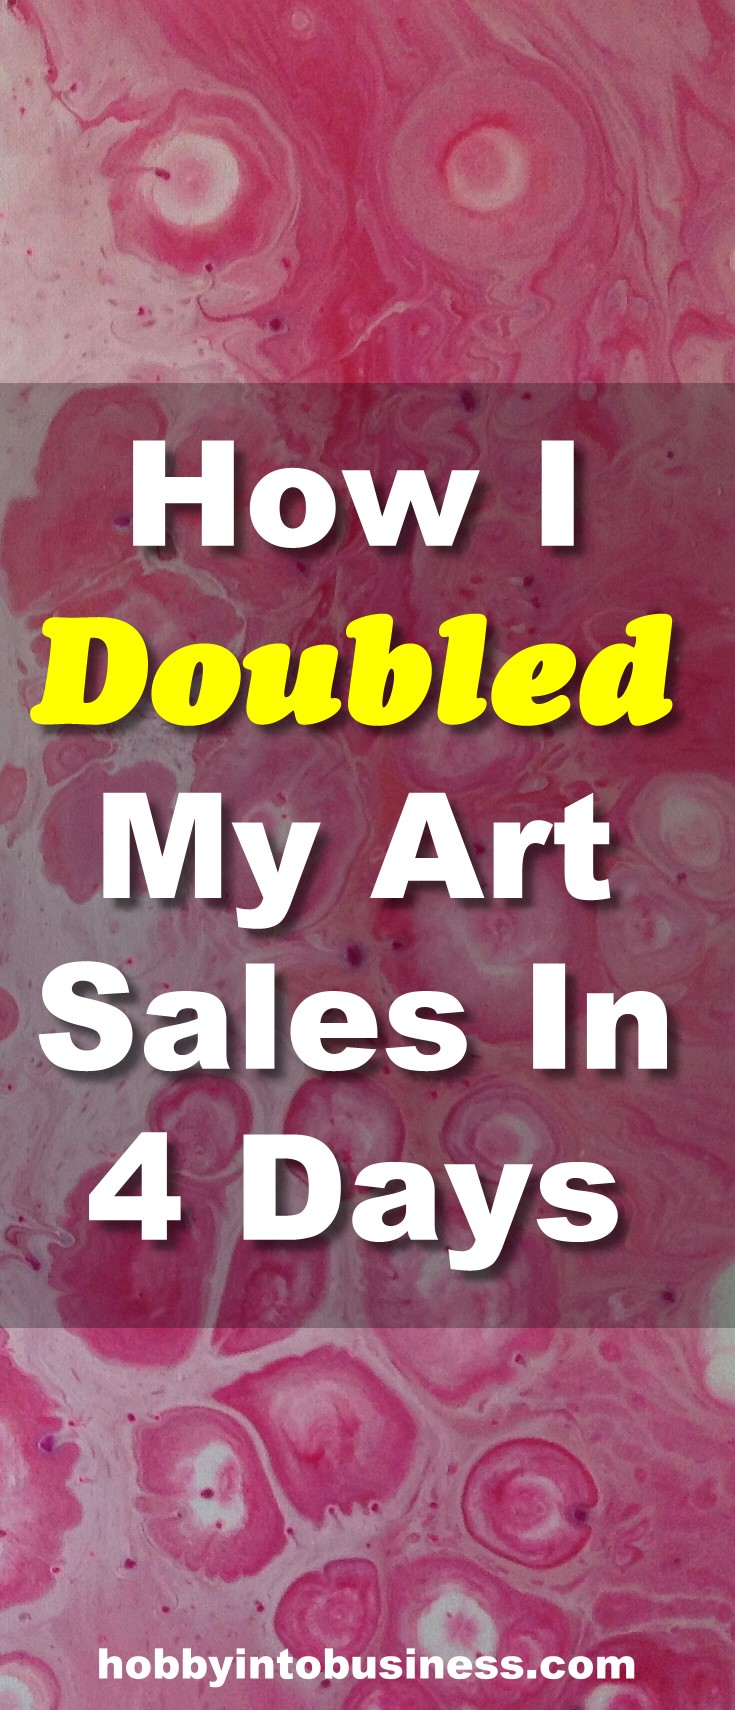 Learn how I doubled my art sales in 4 days by doing this super simple experiment. This technique can work for any type of art you want to sell.